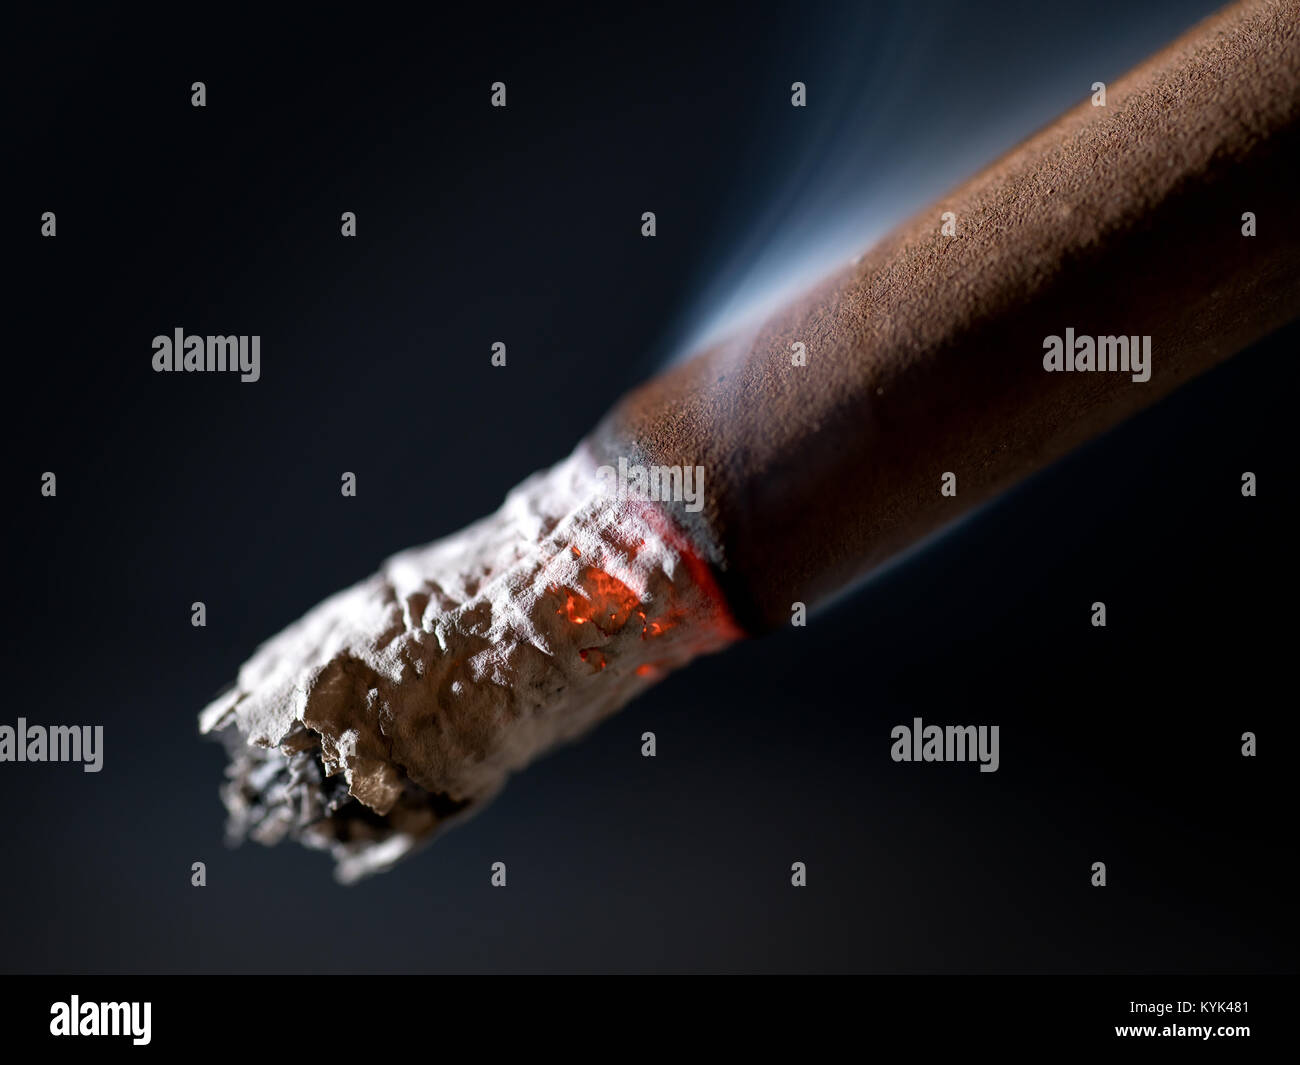 Burning brown cigar with smoke extremal close up. On abstract black background - Stock Image